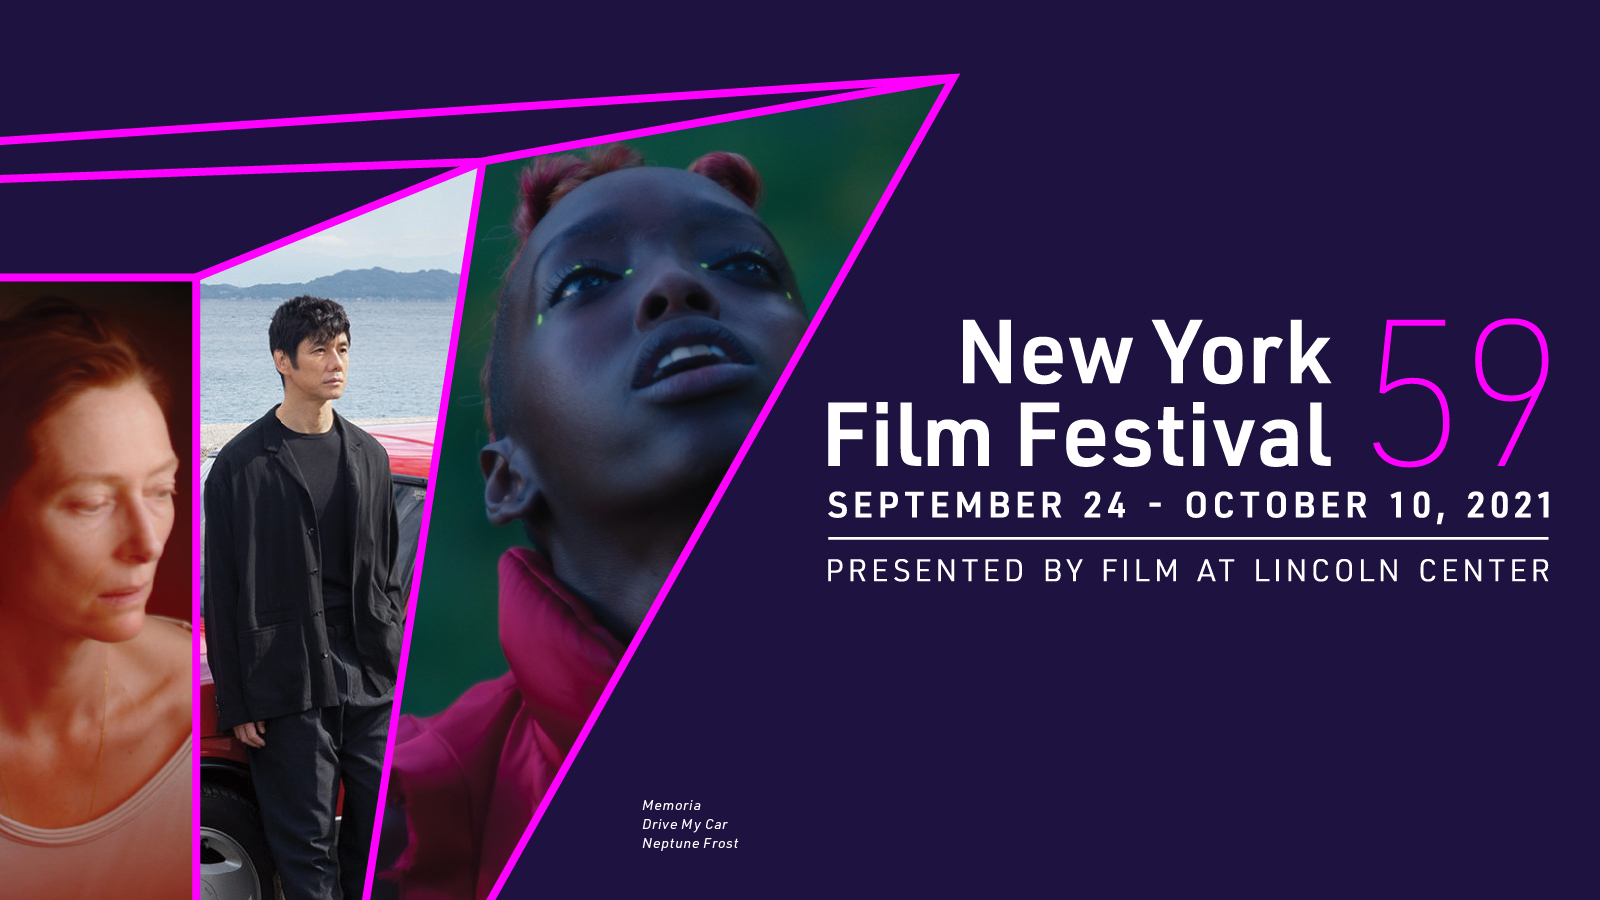 HTN'S 15 Most Anticipated Films at the 2021 New York Film Festival